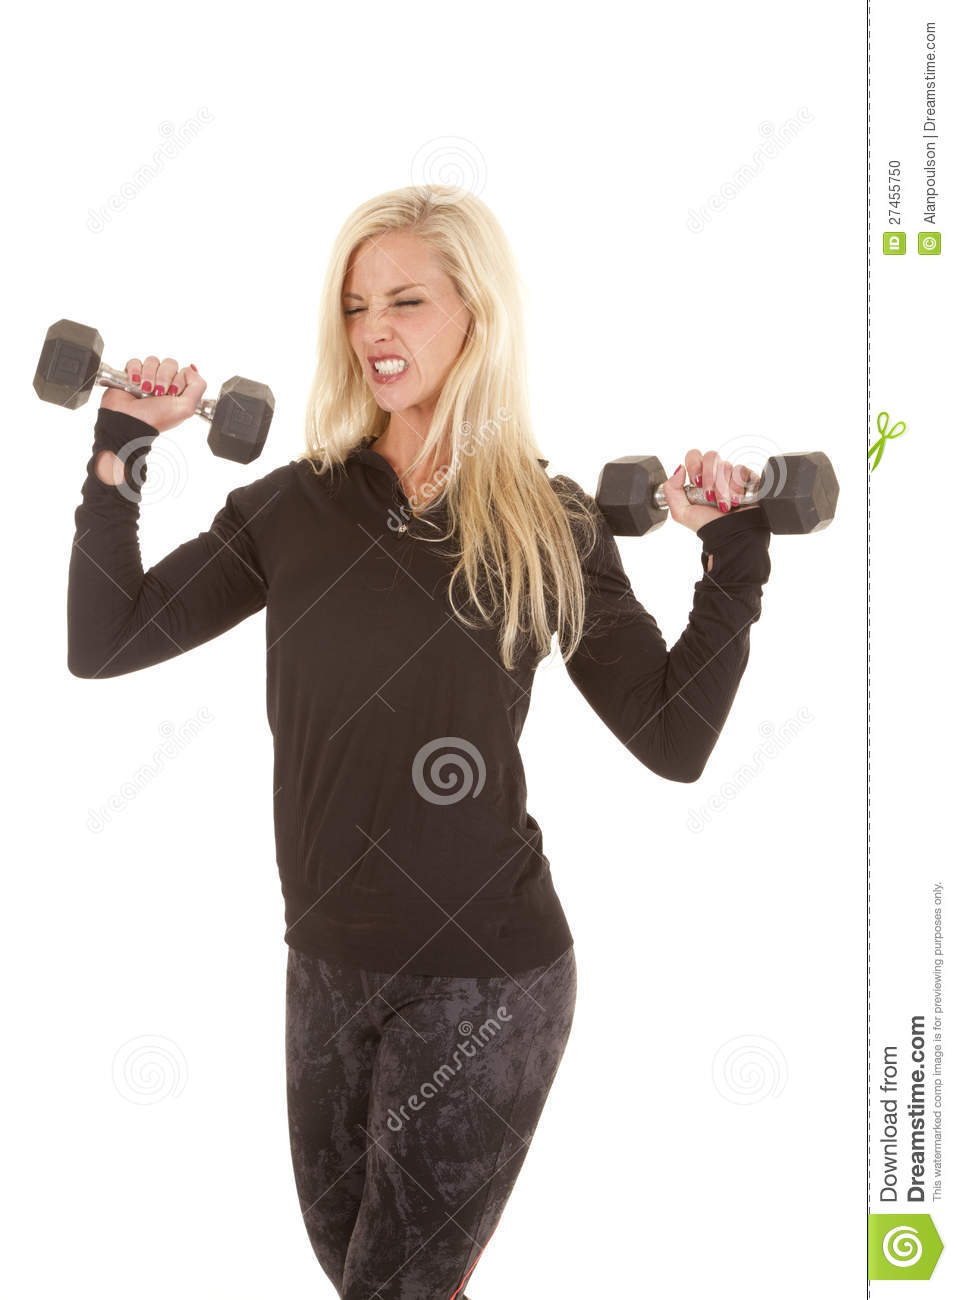 Woman In Black Lifting Two Weights Stock Photo   Image  27455750